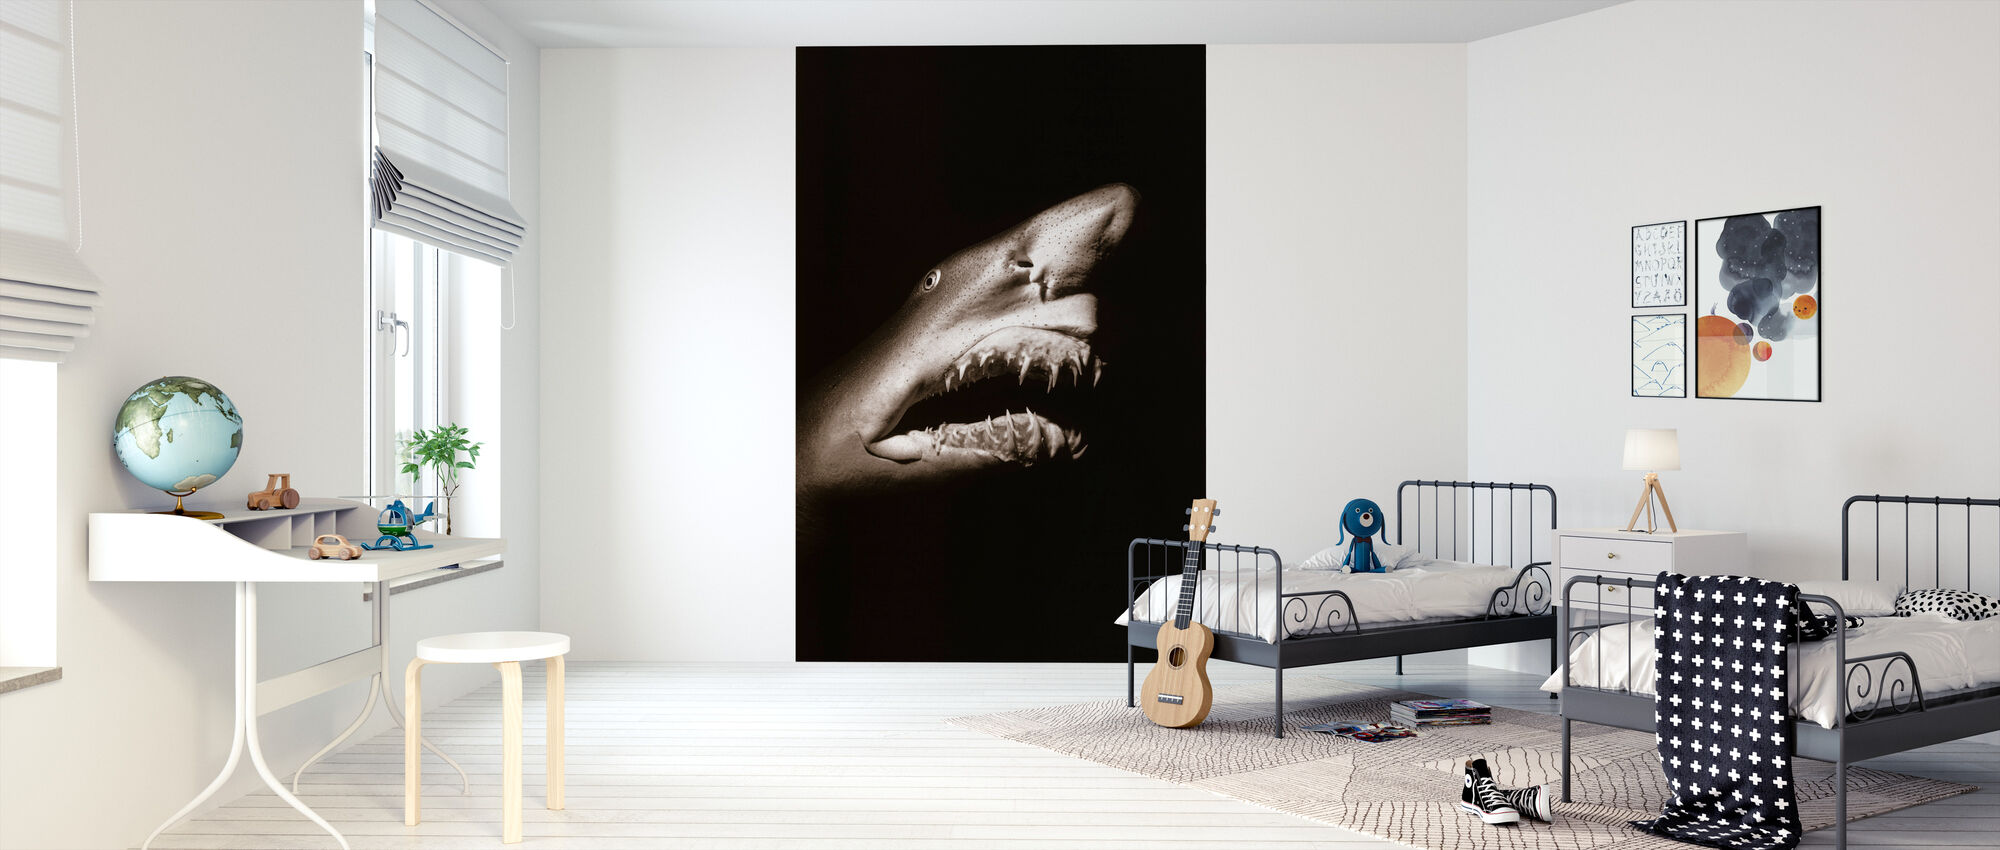 Shark - Sepia - Wallpaper - Kids Room